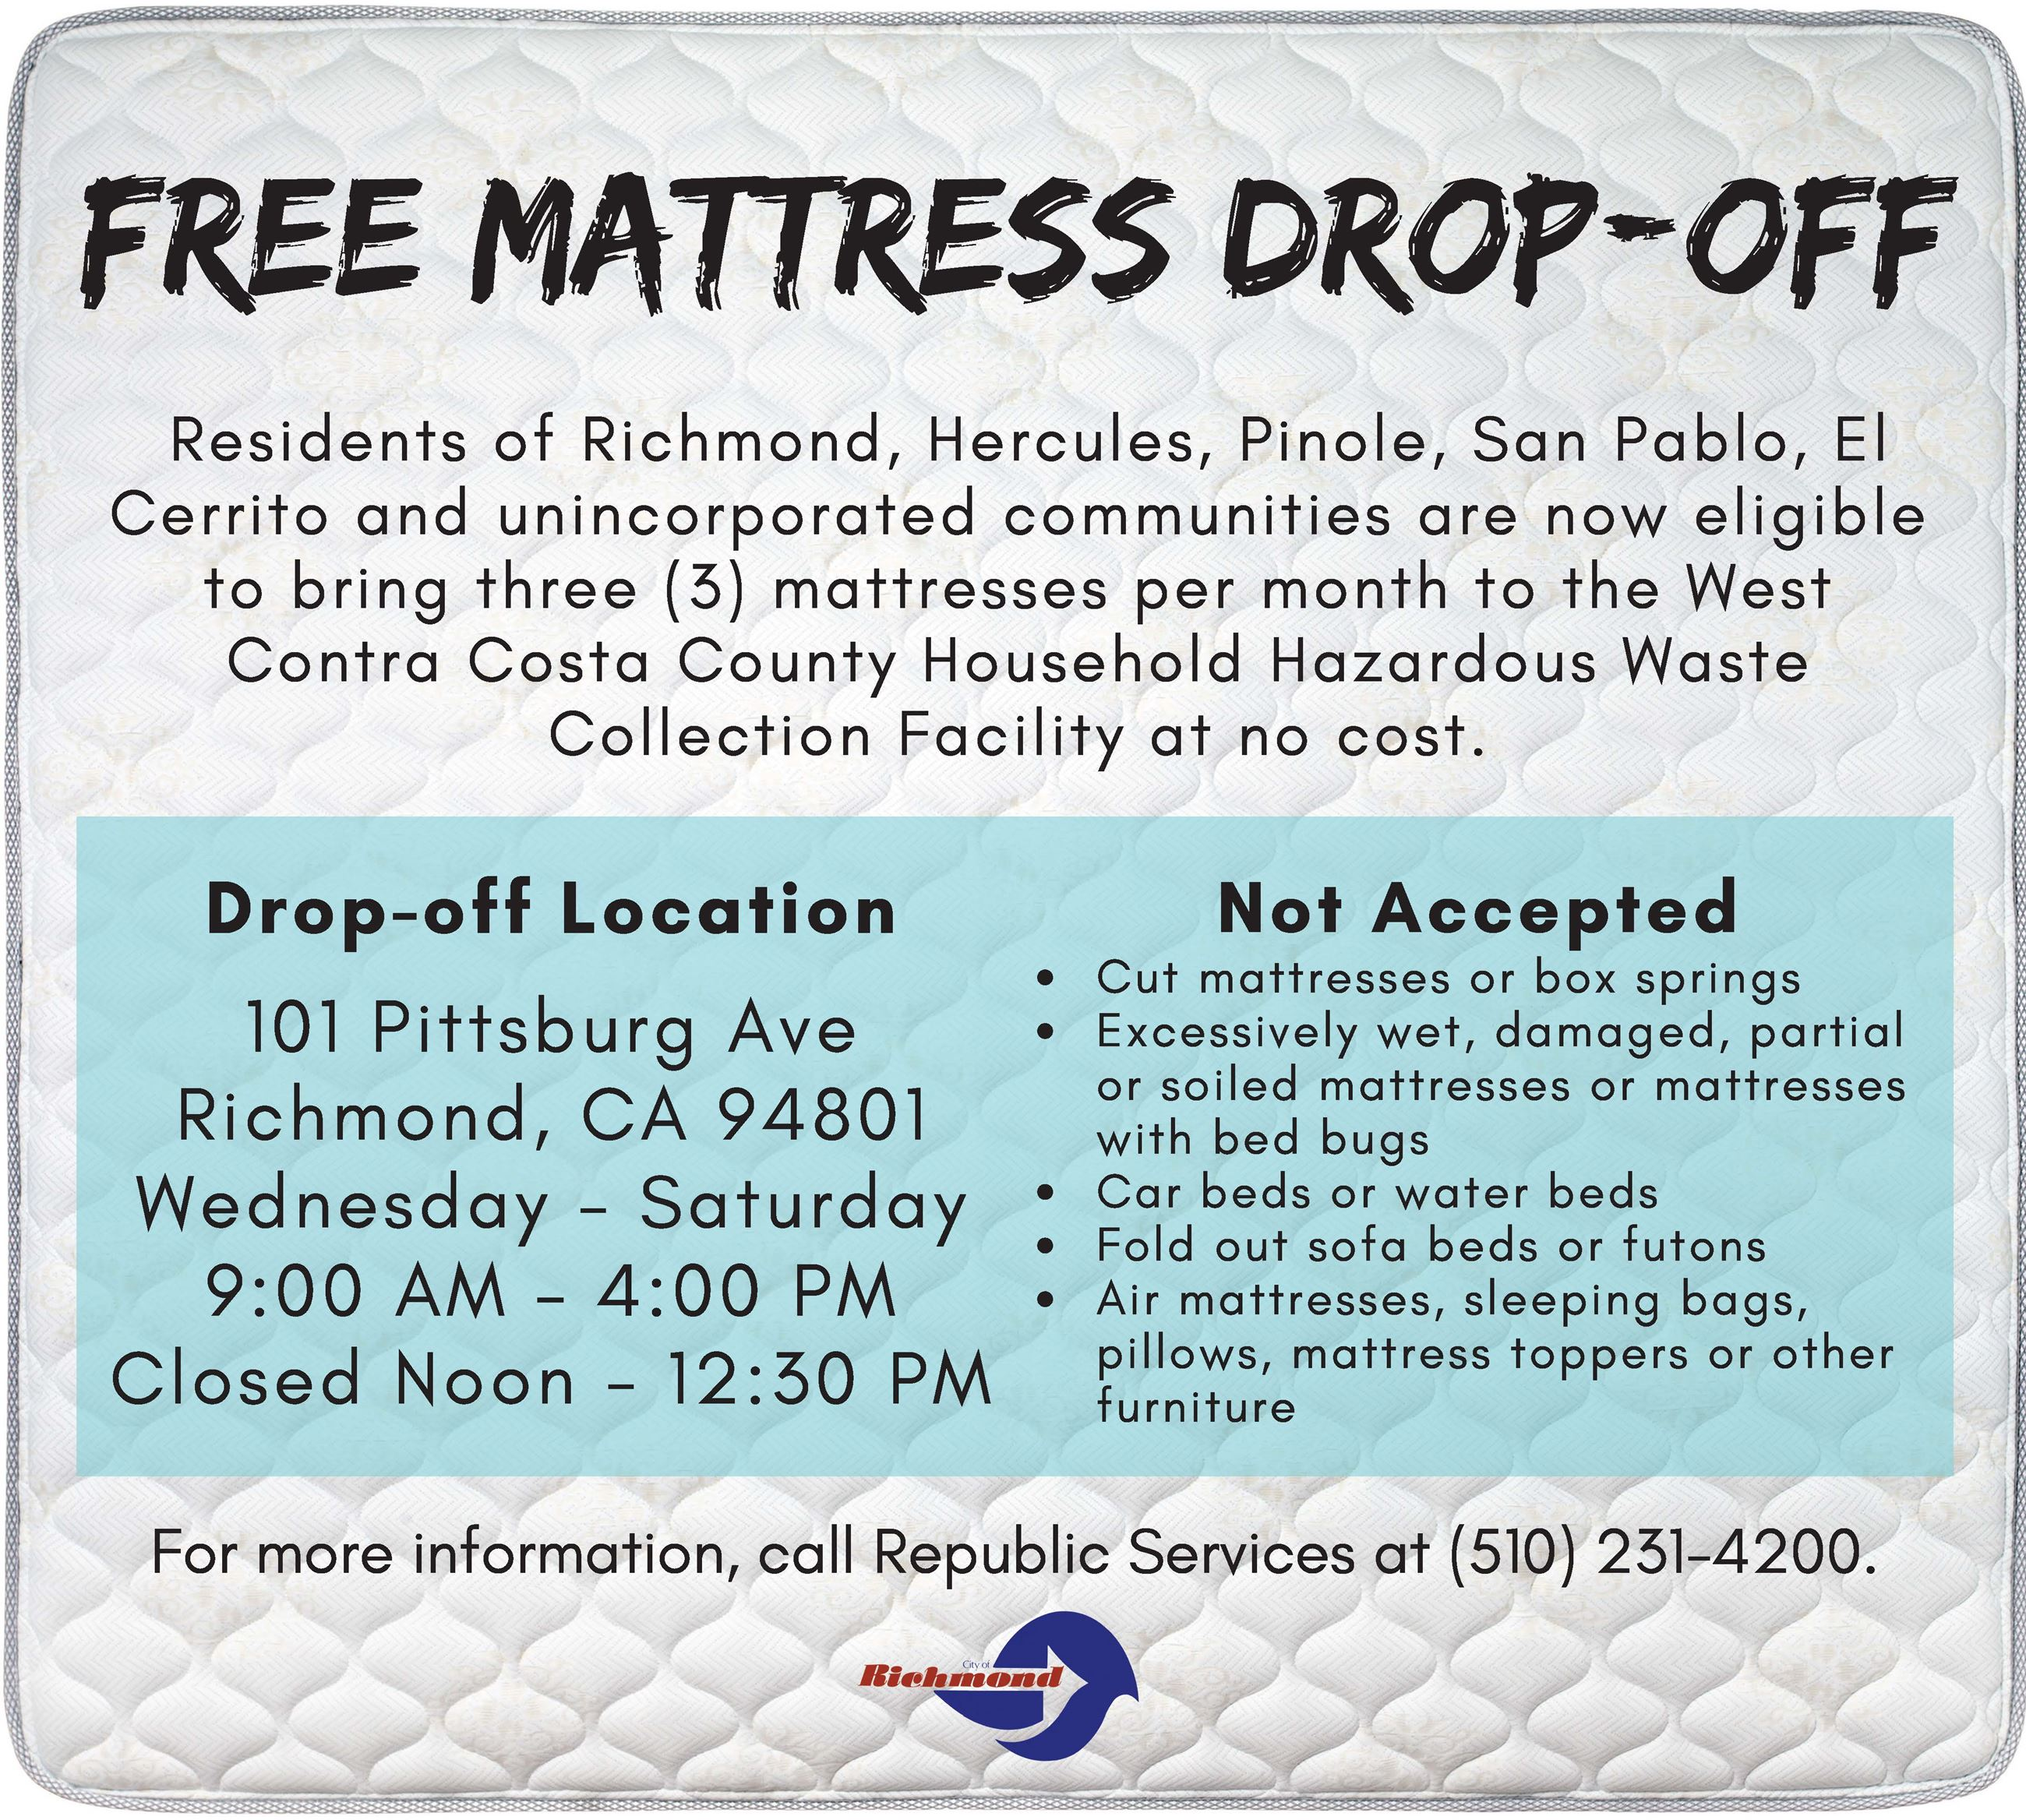 Free Mattress Drop-Off flyer 7-10-19_Page_1